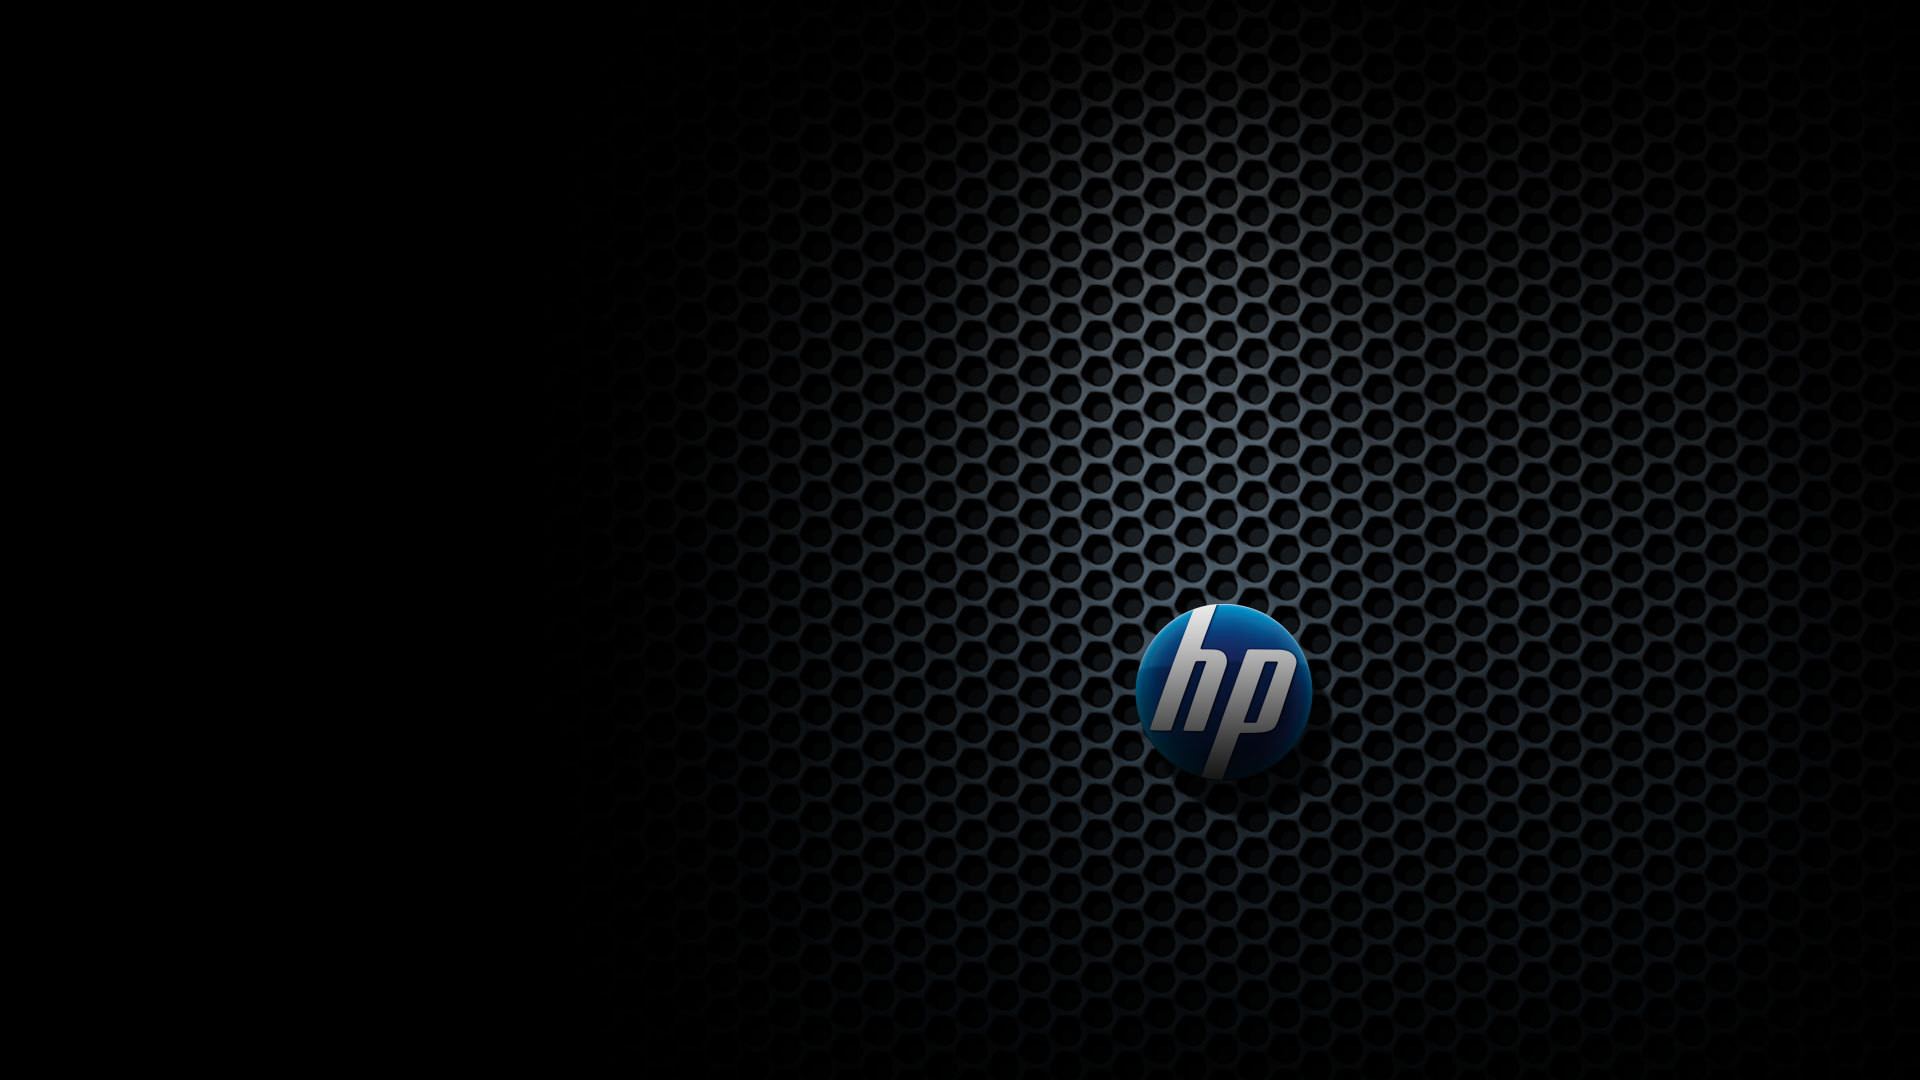 Res: 1920x1080, HP logo on the grid